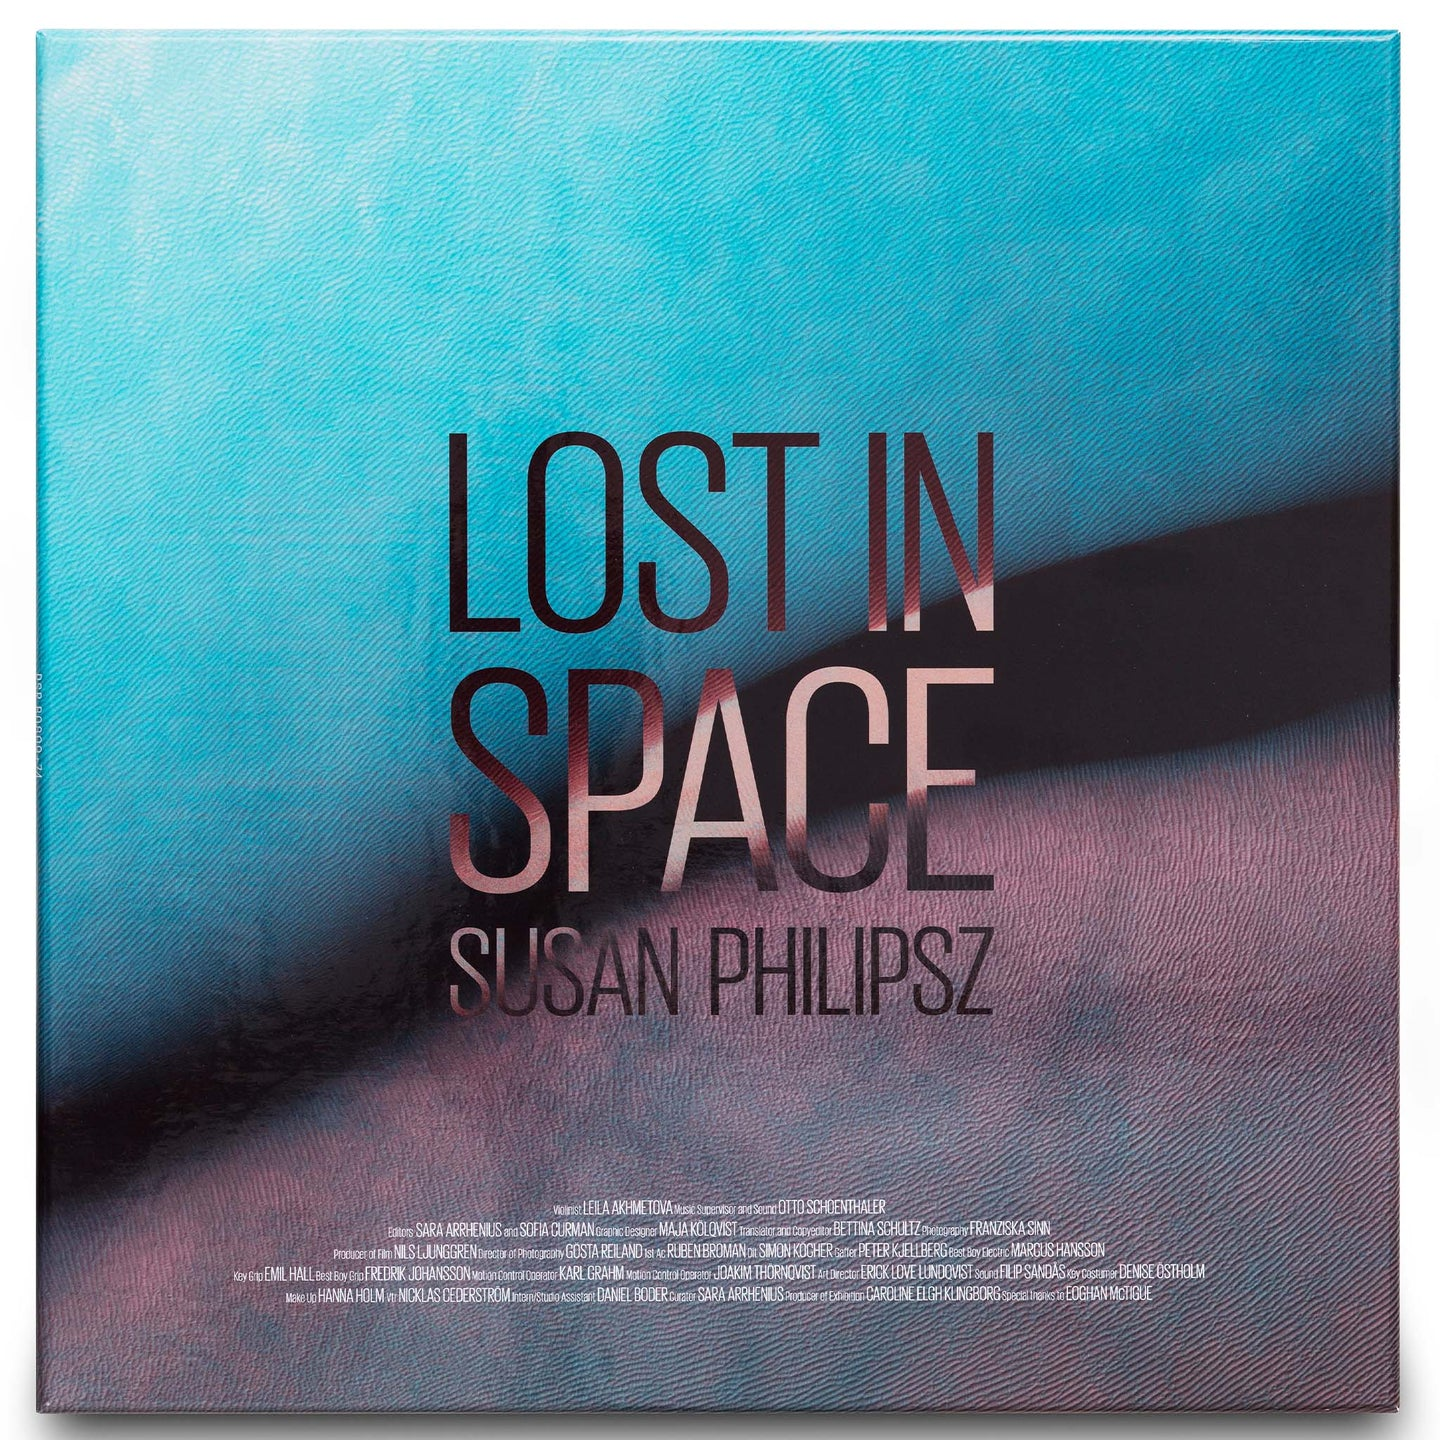 SUSAN PHILIPSZ: LOST IN SPACE